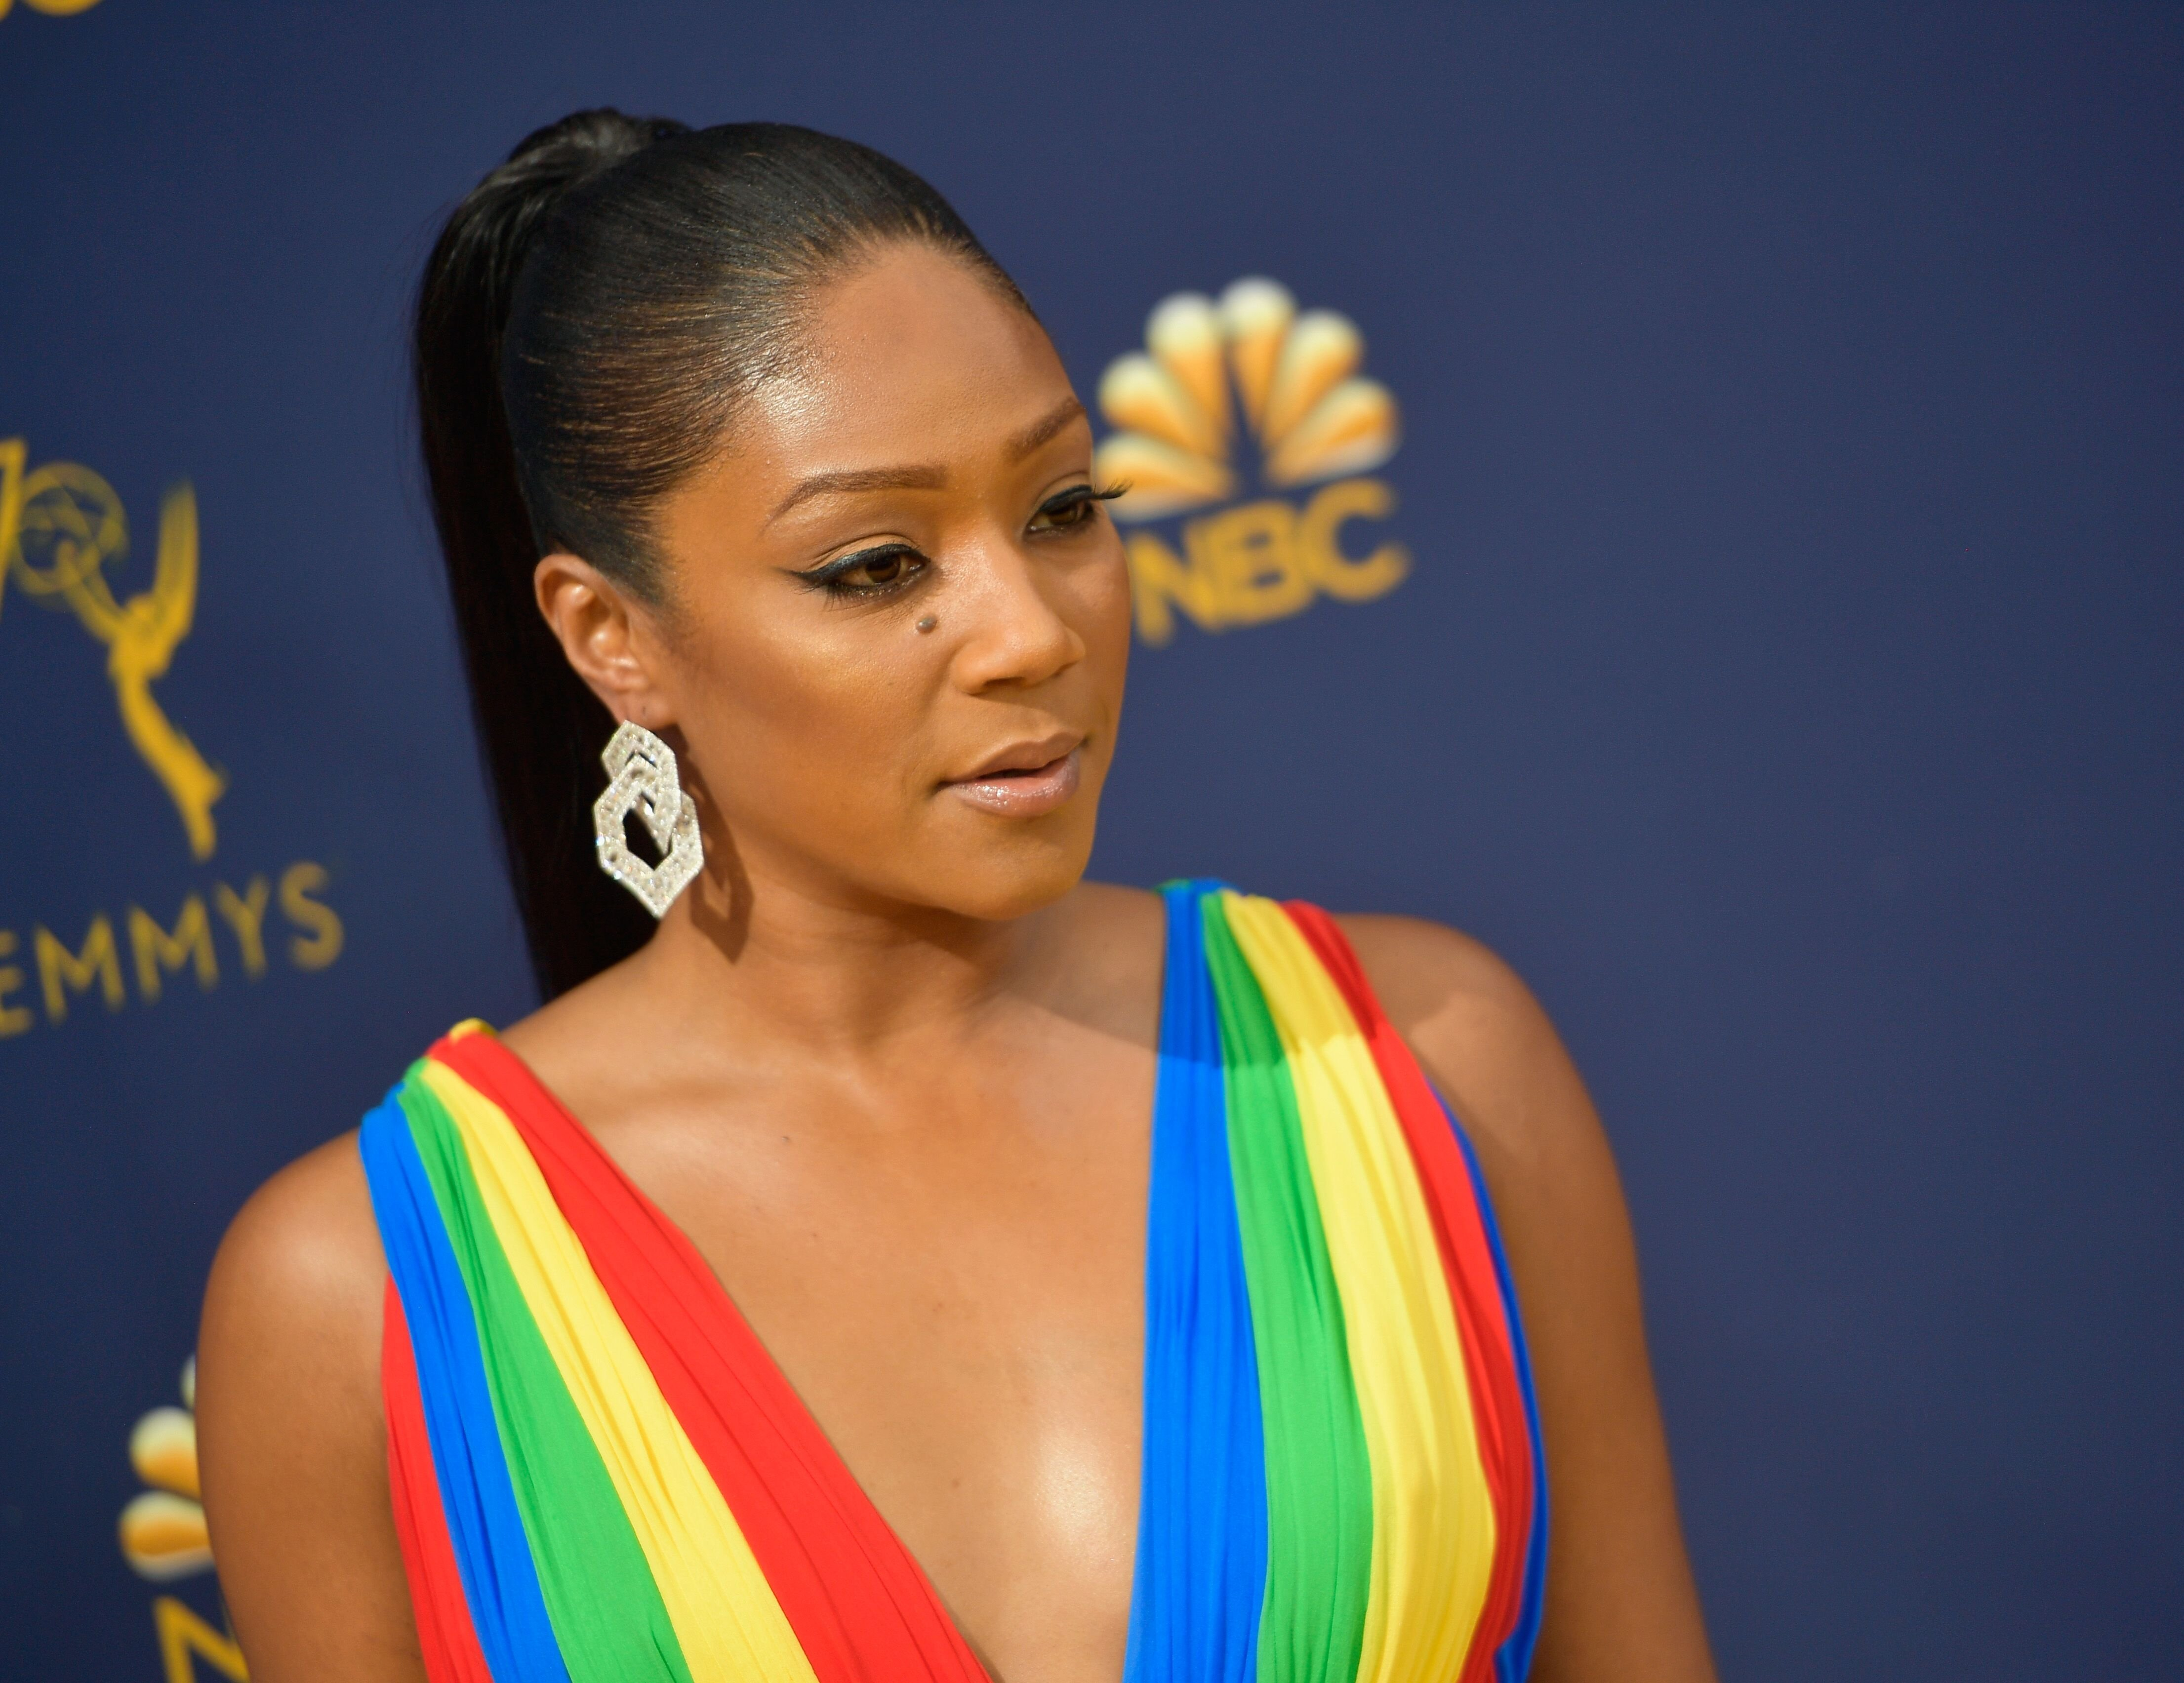 Tiffany Haddish attends the 70th Emmy Awards at Microsoft Theater | Photo: Getty Images